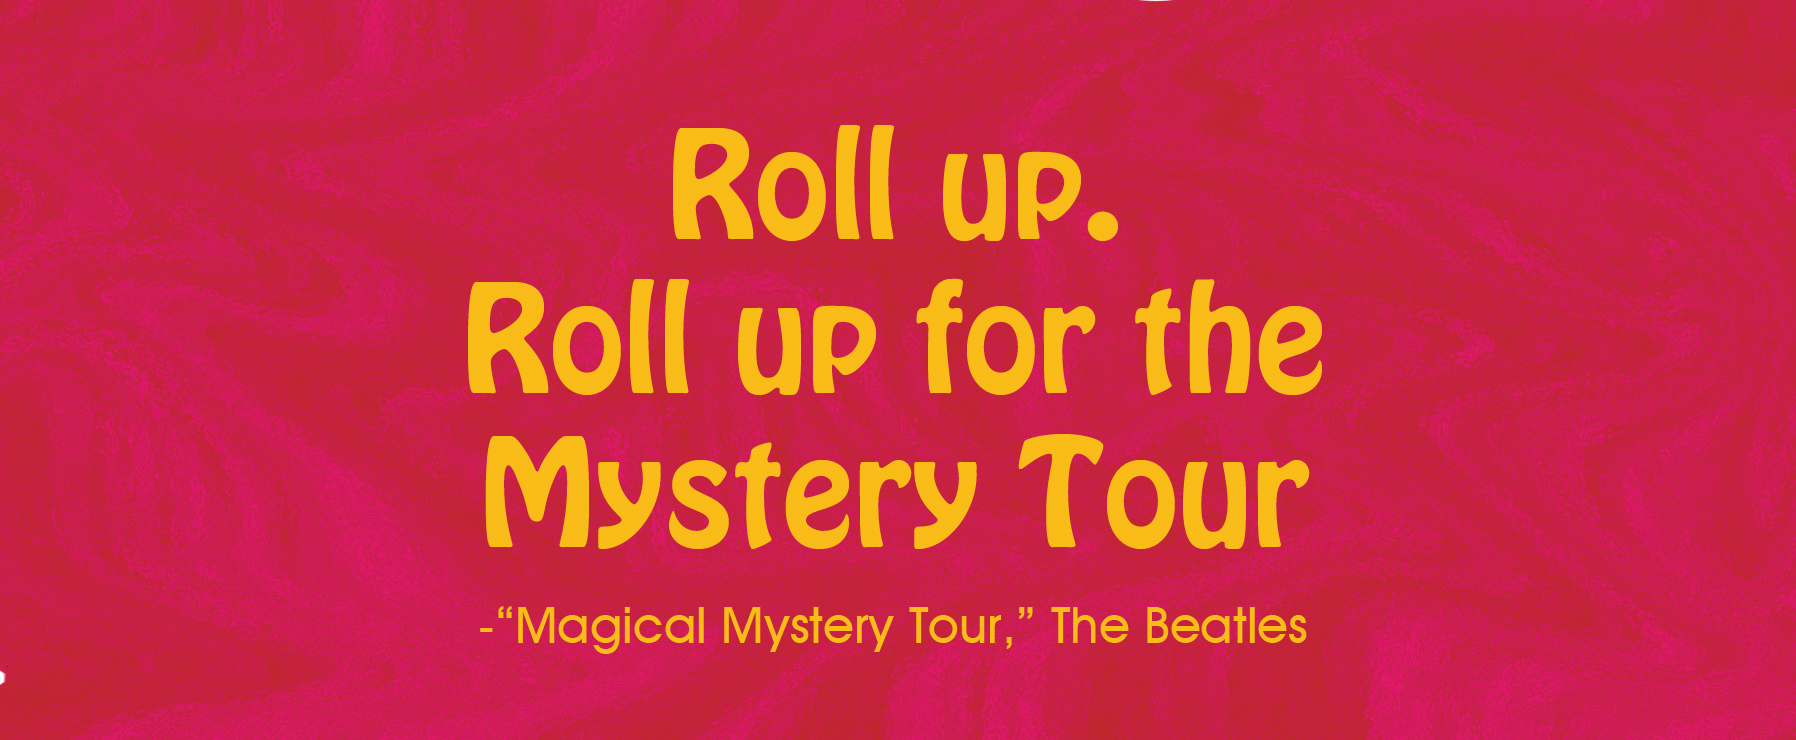 The Magical Mystery Tour is hoping to take you away.